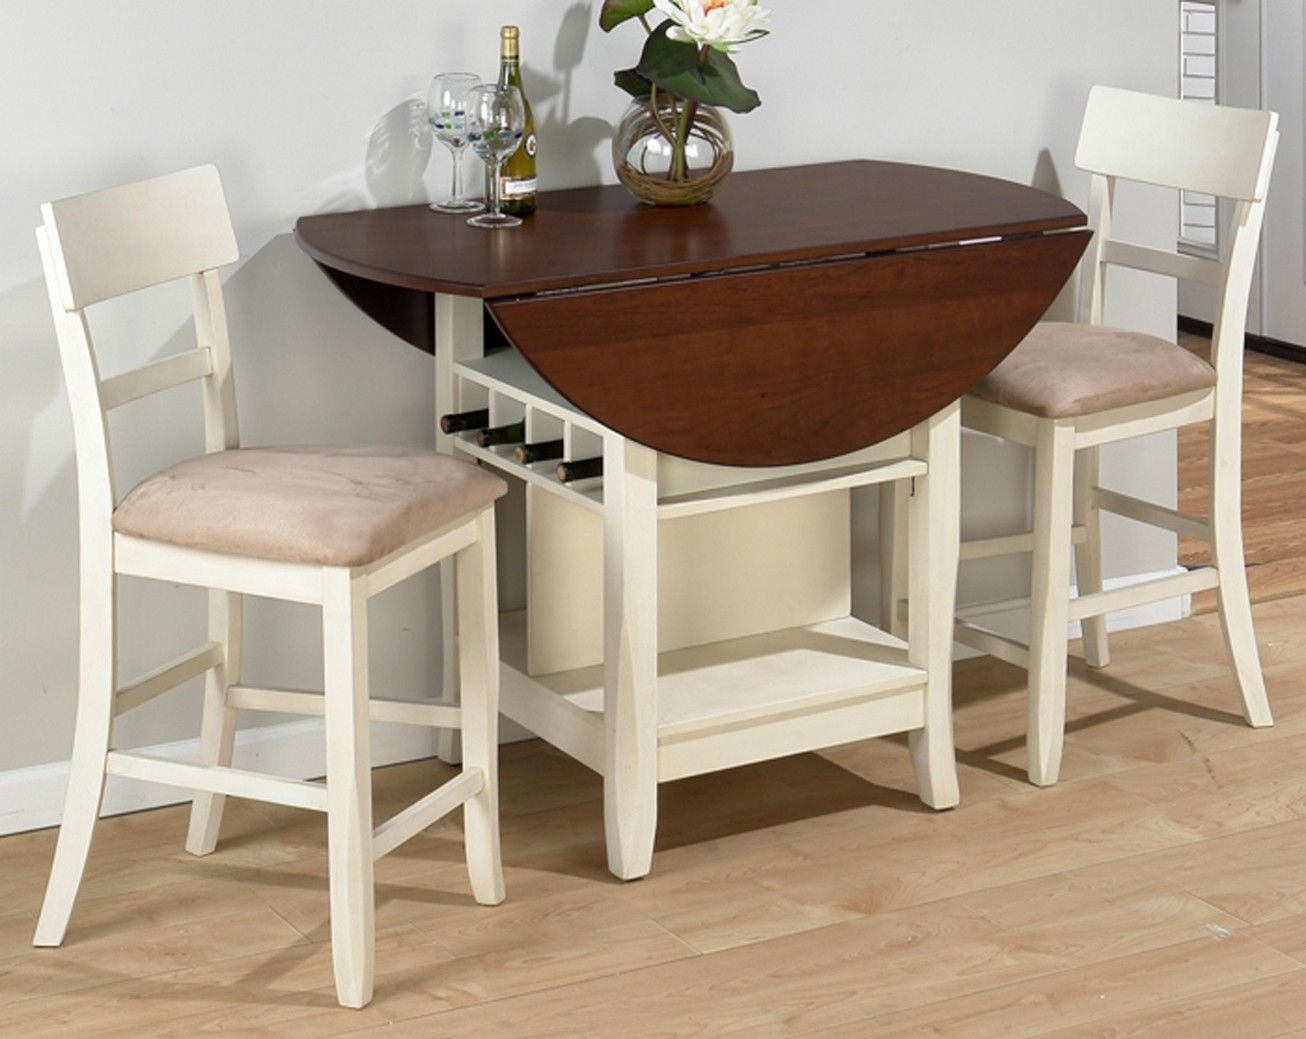 Kitchen Table And Chairs For Small Spaces The Best Options For Consideration Goodw In 2020 Small Kitchen Table Sets Small Round Kitchen Table Kitchen Table Settings